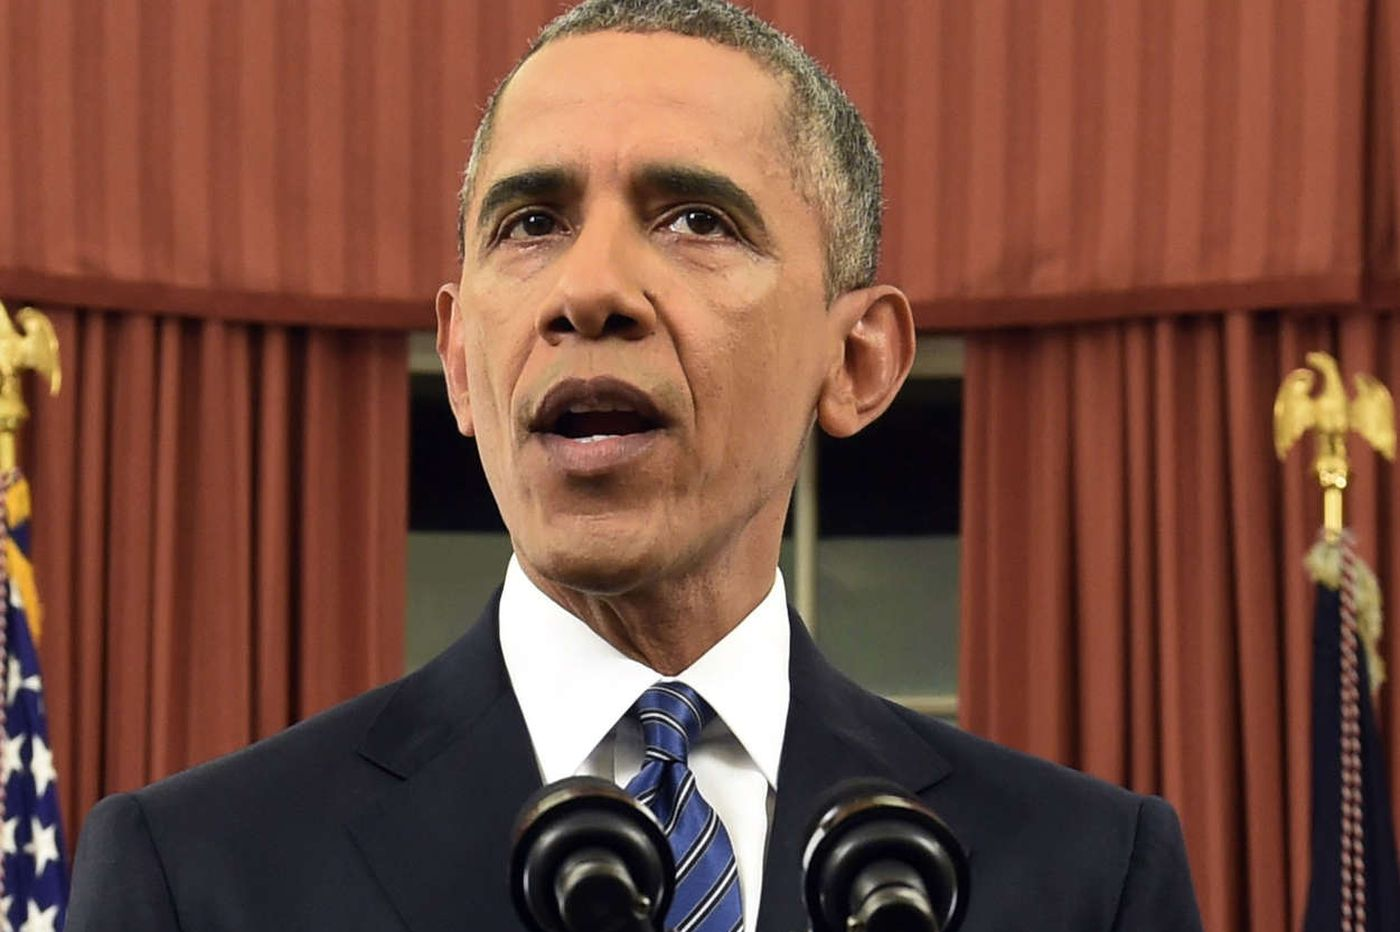 Obama vows to defeat terror's new phase